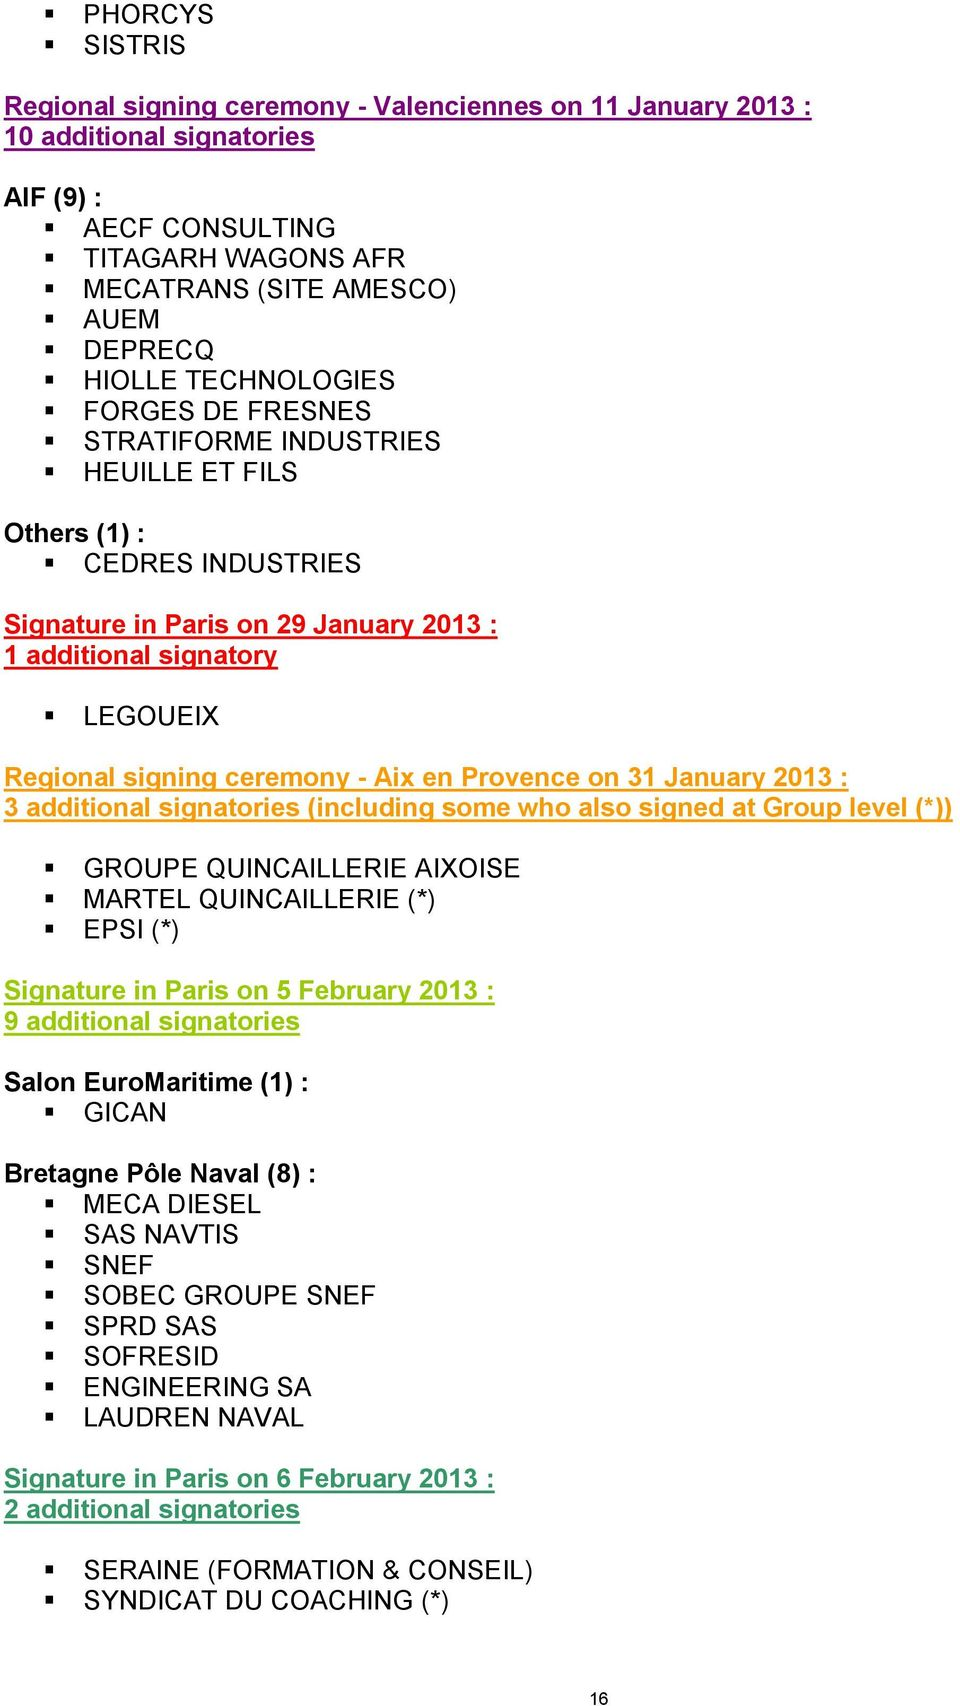 January 2013 : 3 additional signatories (including some who also signed at Group level (*)) GROUPE QUINCAILLERIE AIXOISE MARTEL QUINCAILLERIE (*) EPSI (*) Signature in Paris on 5 February 2013 : 9